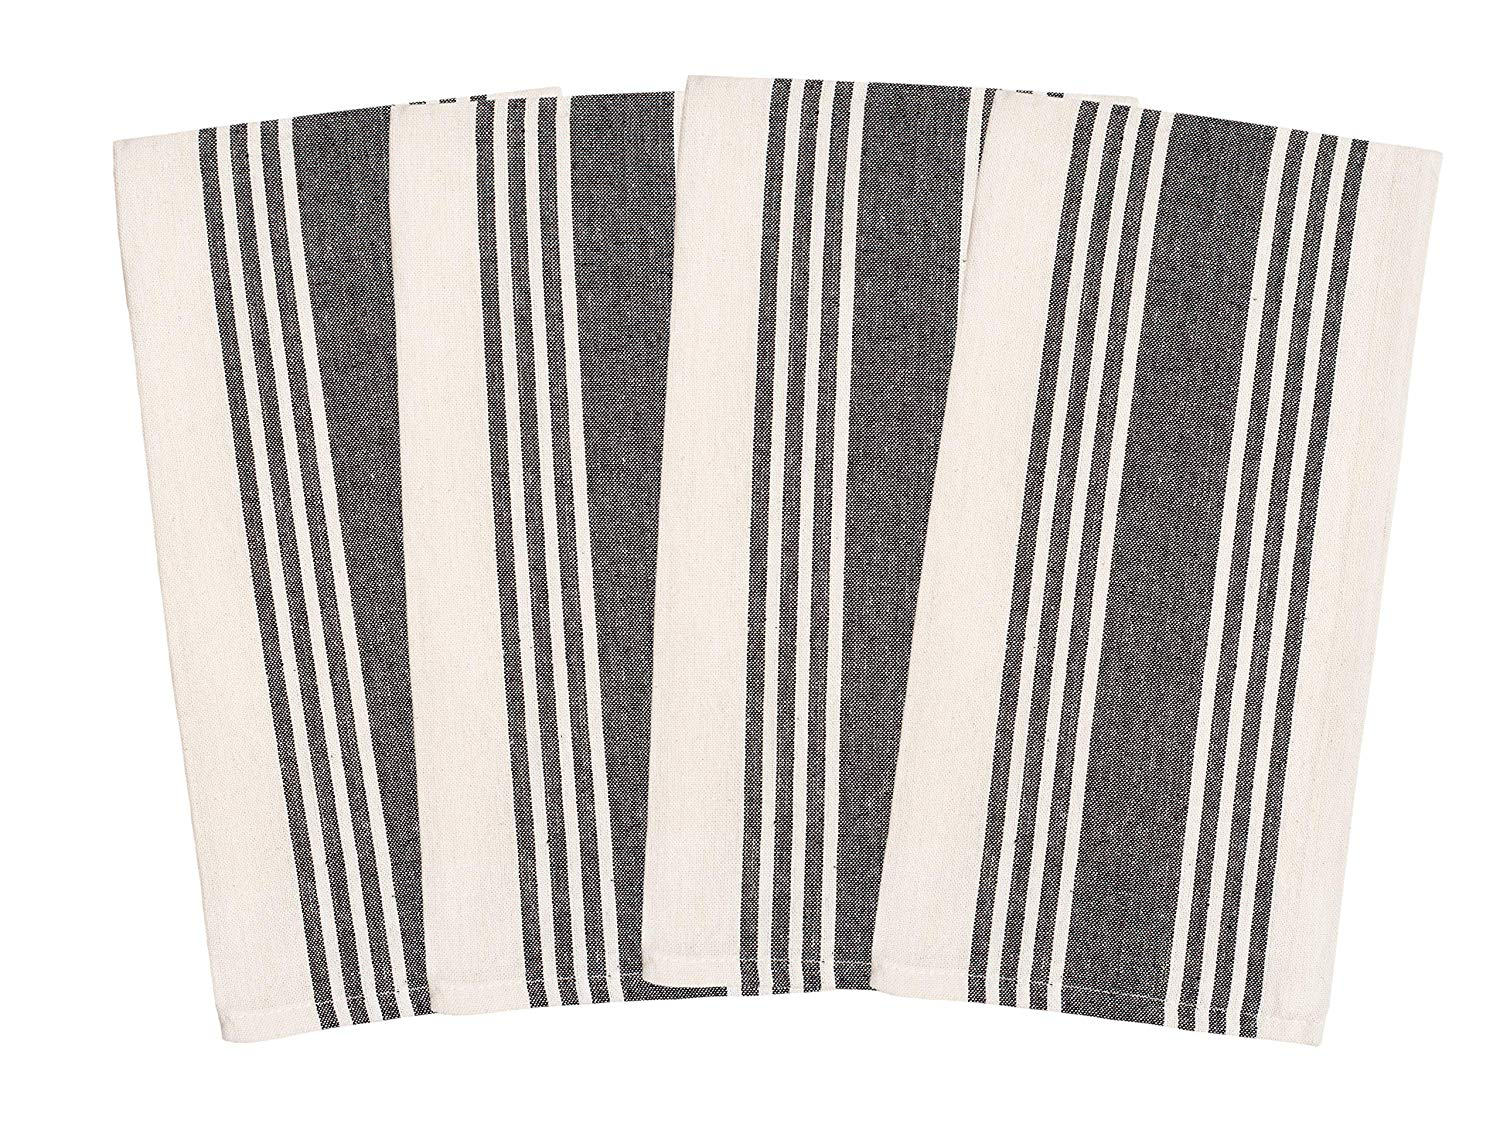 Overzised Kitchen Towels - Dish Cloth - (4 Pack) Machine Washable 100% Cotton Kitchen Dishcloths, Dish Towel & Tea Towels, Stripe, 20x27 Inch - Superior Professional Grade, Multi Purpose - Gray